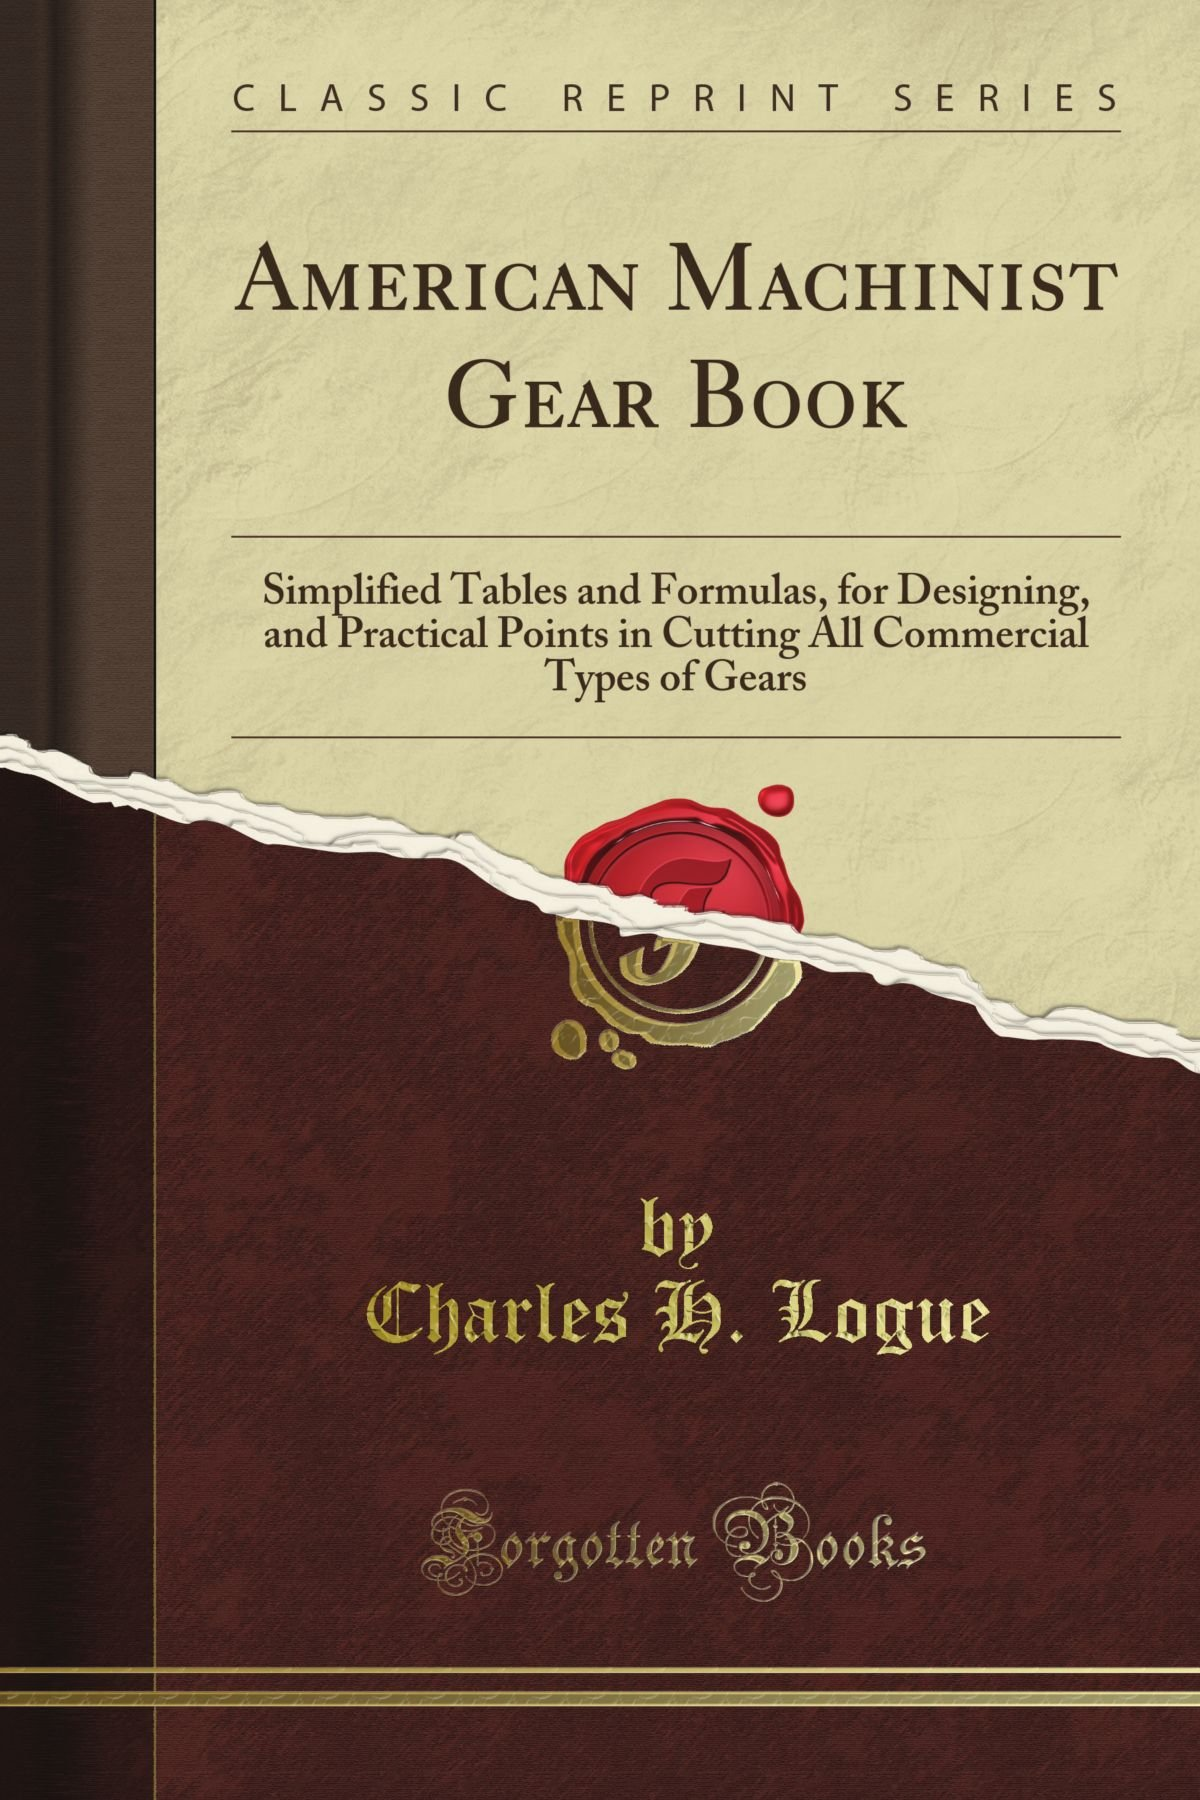 Read Online American Machinist Gear Book: Simplified Tables and Formulas, for Designing, and Practical Points in Cutting All Commercial Types of Gears (Classic Reprint) PDF